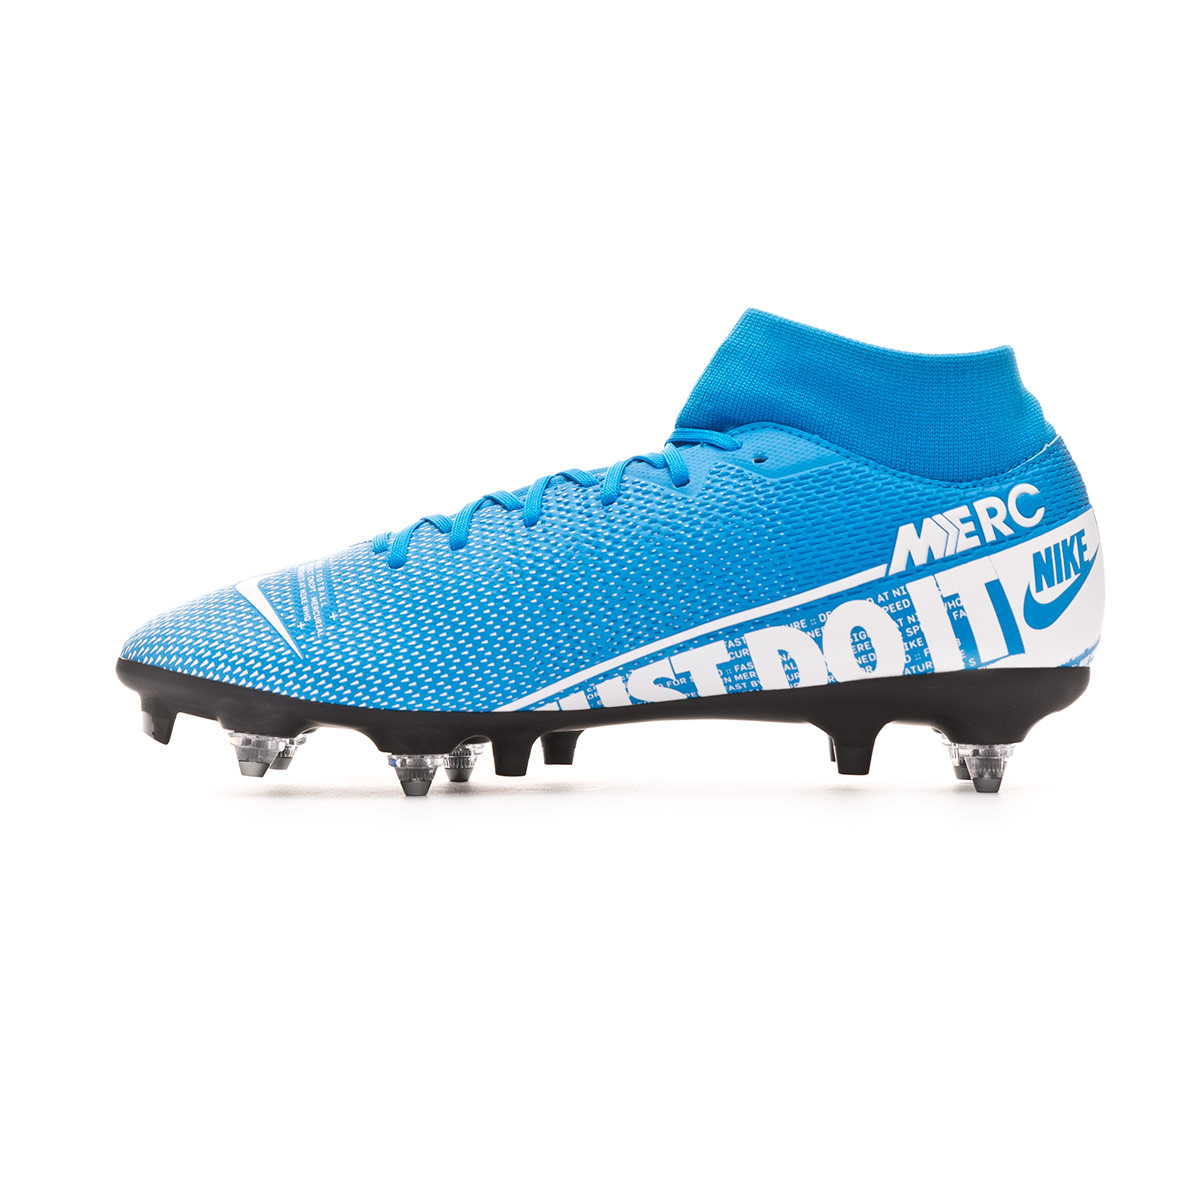 size 40 27d5c aad89 Bota Mercurial Superfly VII Academy ACC SG-Pro Blue hero-White-Obsidian